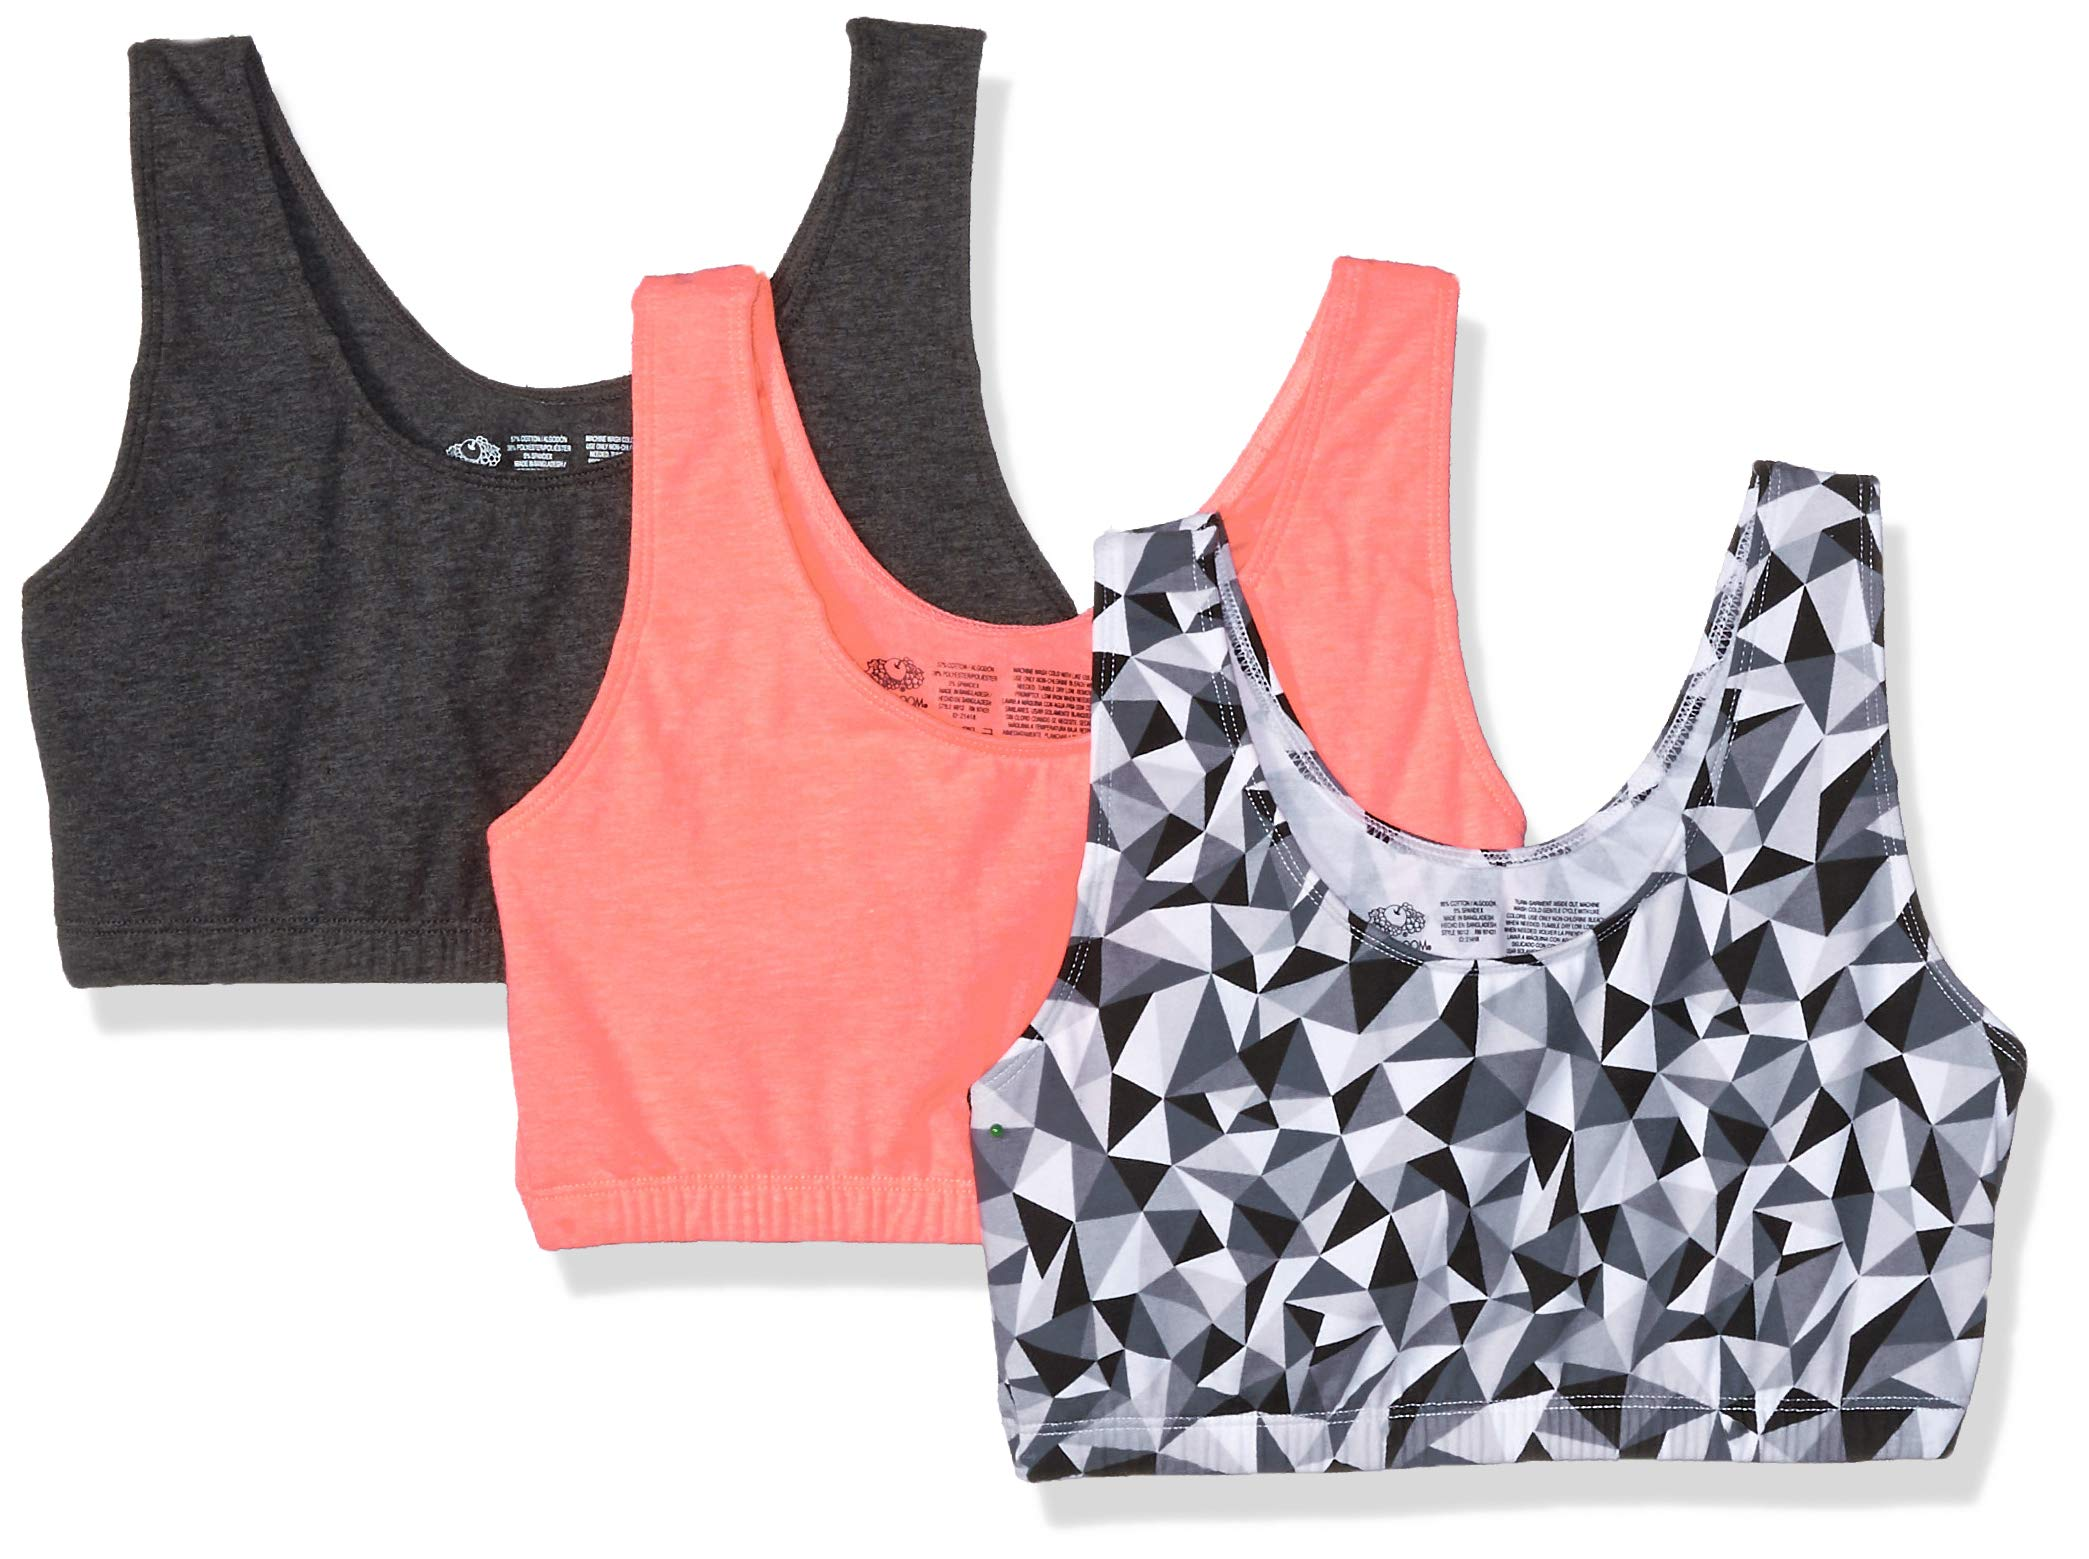 Fruit of the Loom Women's Built-Up Sports Bra 3 Pack Bra, Kaleidoscope/Charcoal/Punchy Peach, 42 by Fruit of the Loom